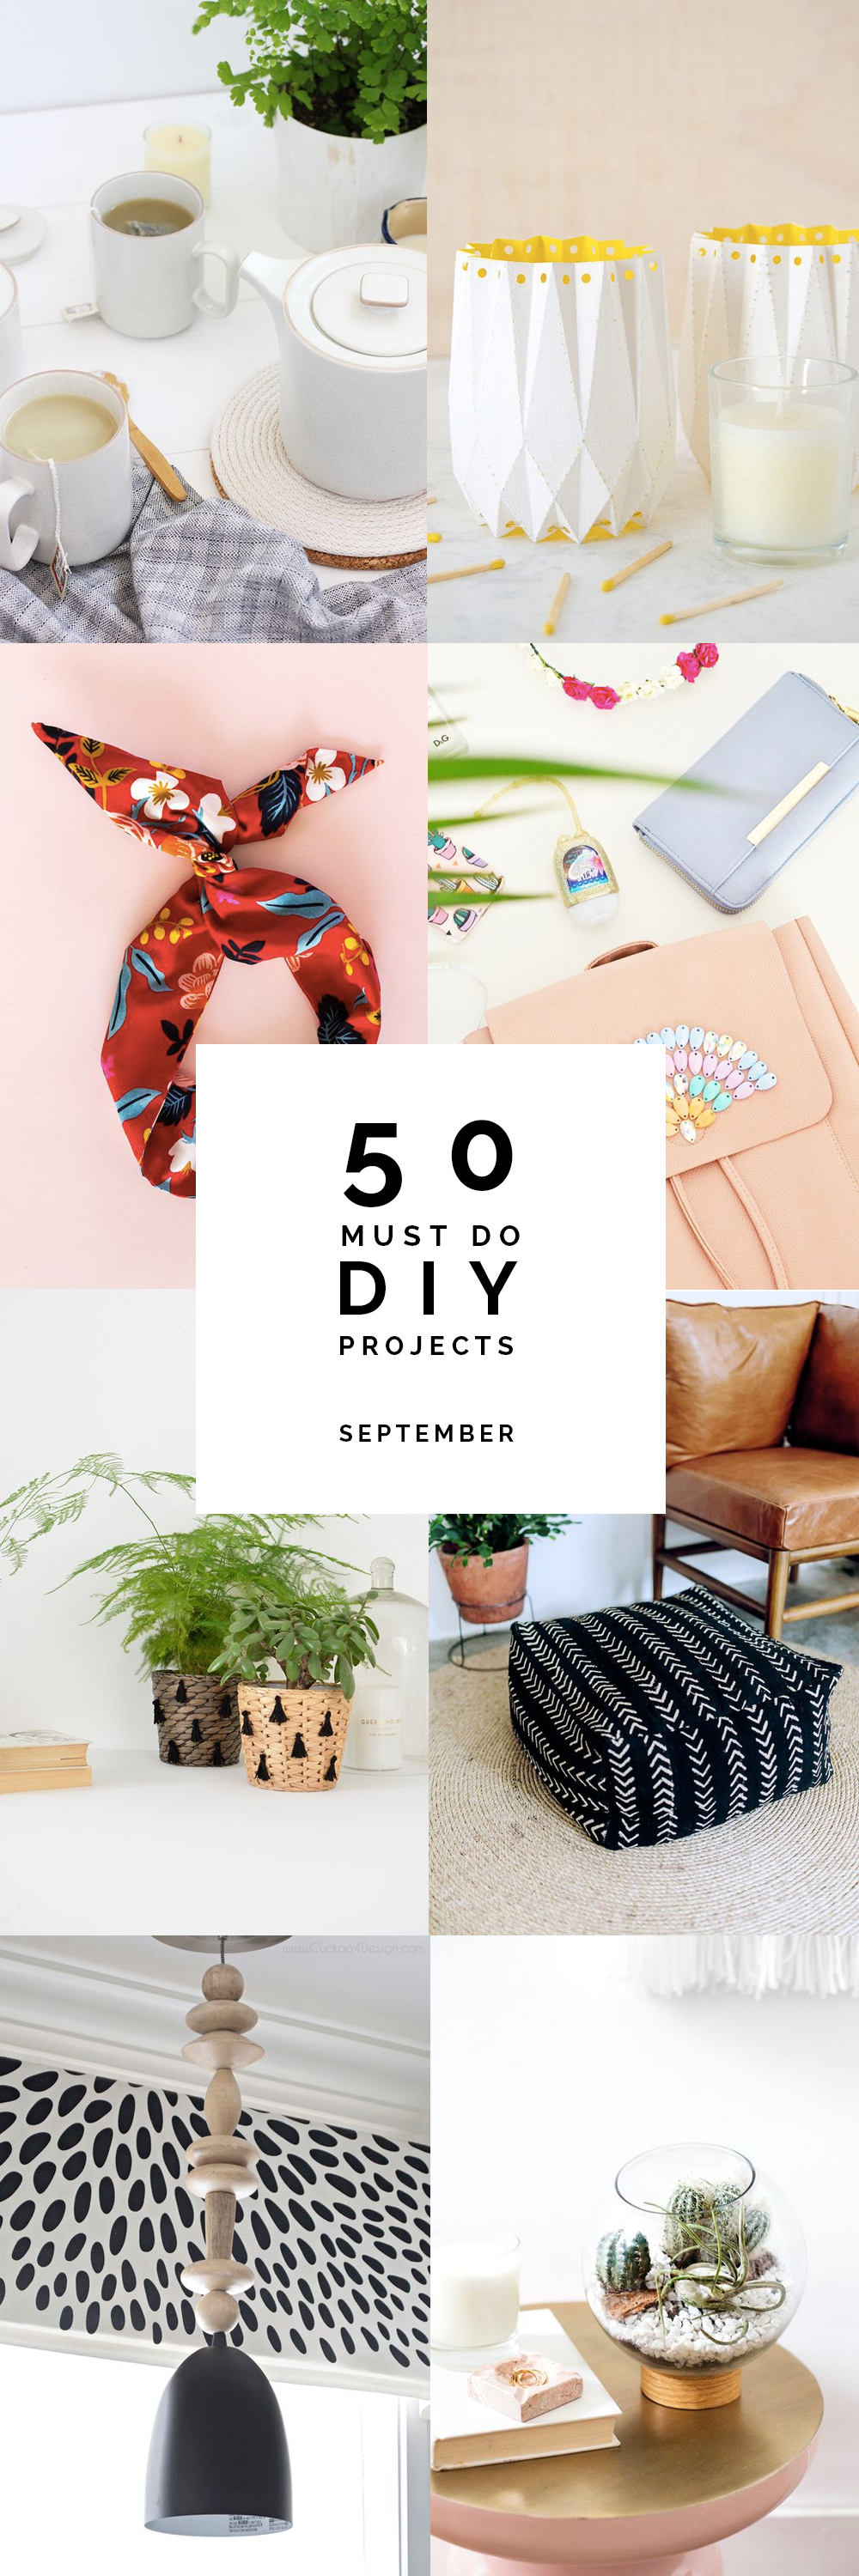 50 Must Do DIY's | September @fallfordiy